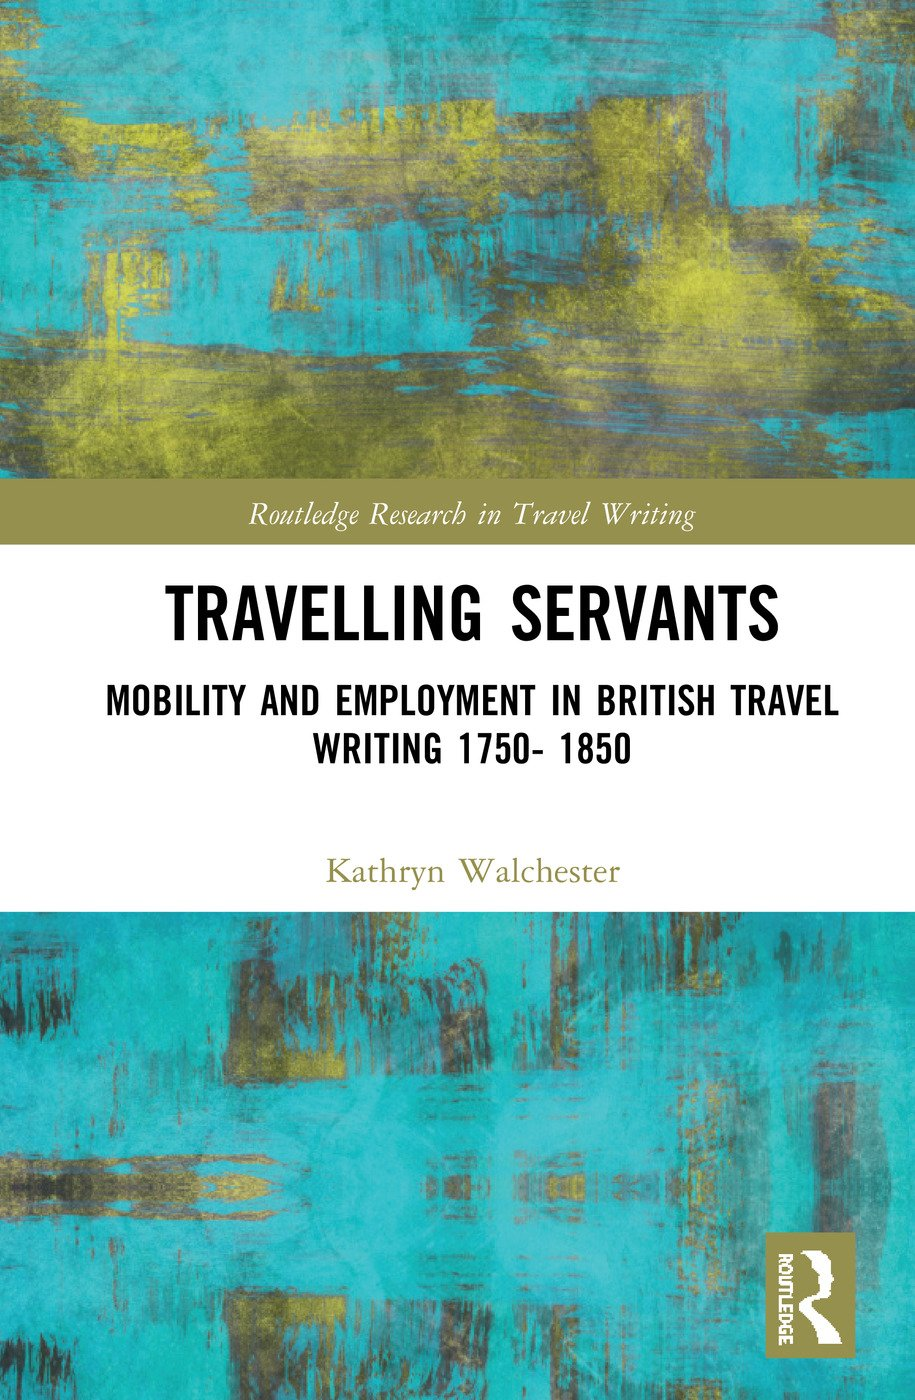 Travelling Servants: Mobility and Employment in British Travel Writing 1750- 1850 book cover